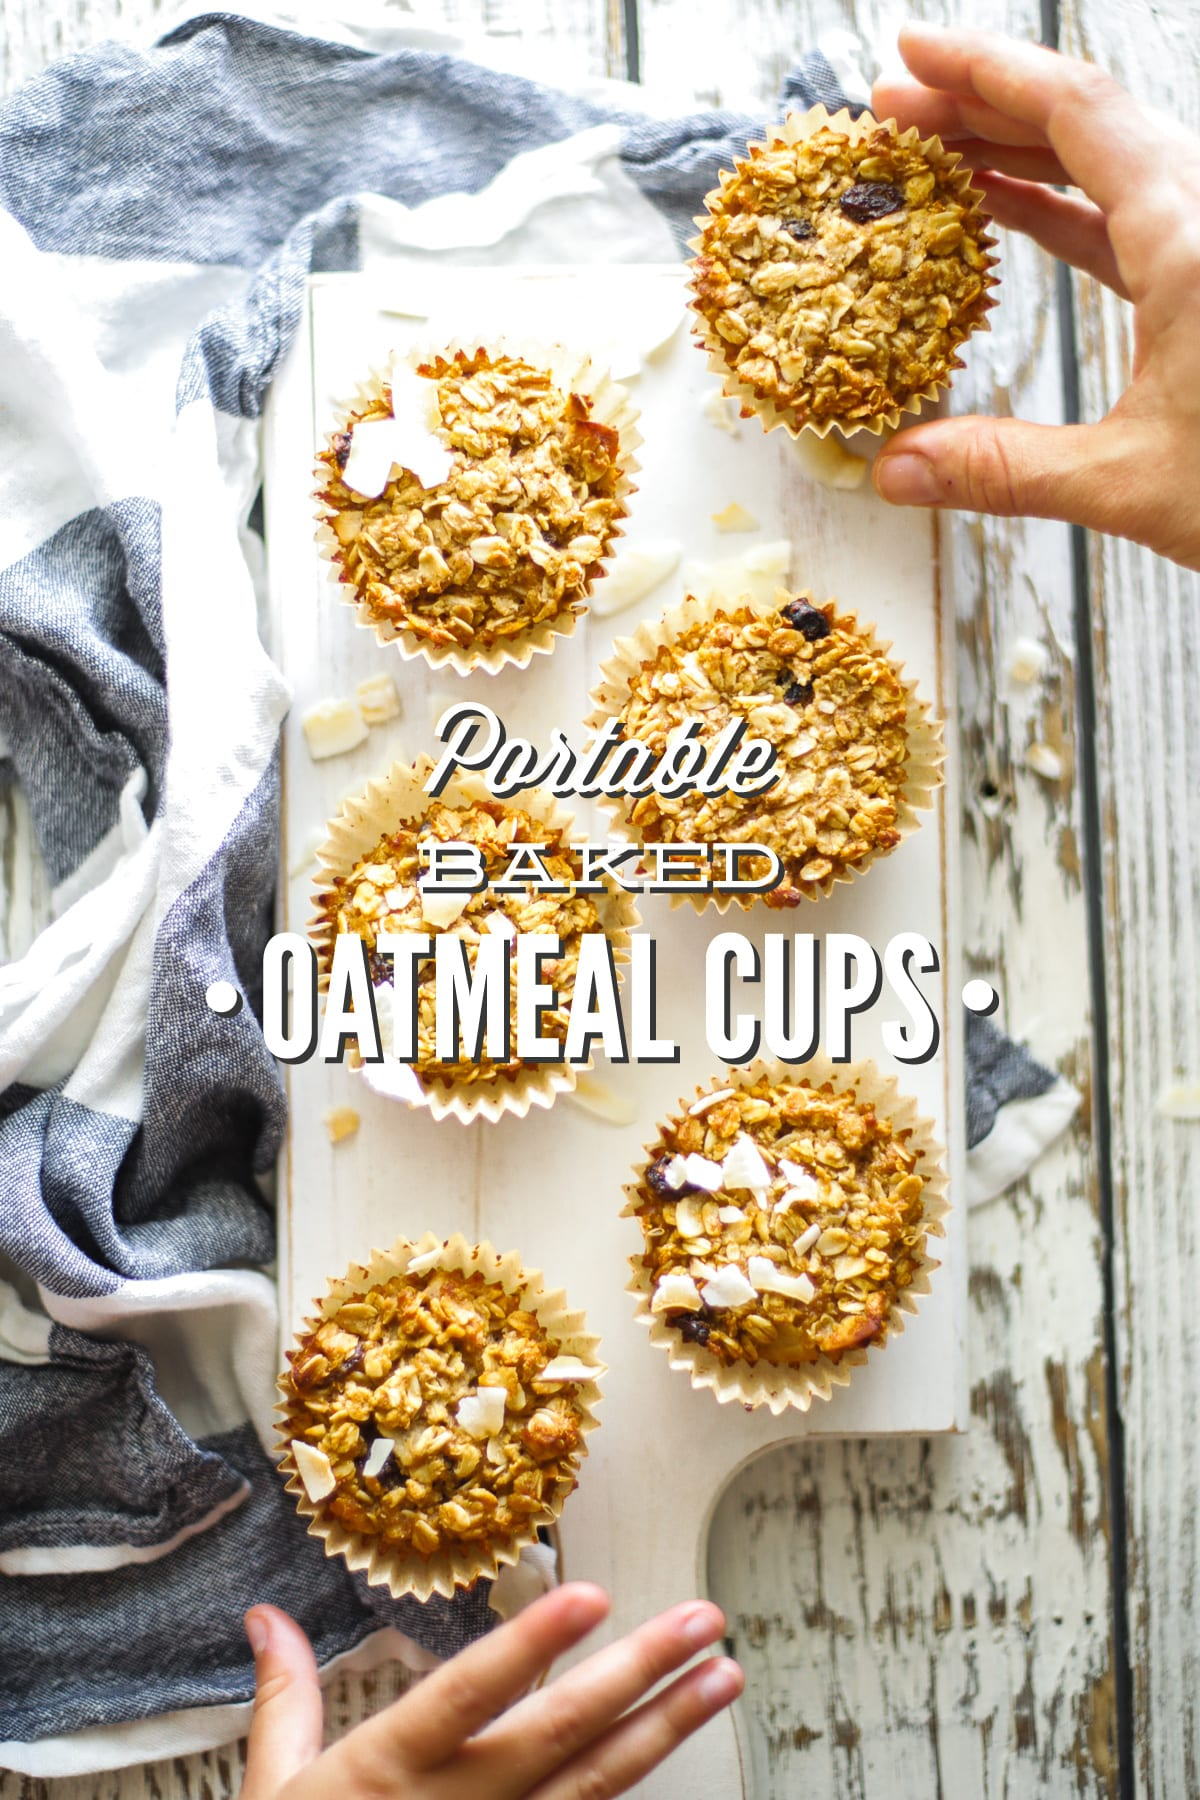 Portable Baked Oatmeal Cups